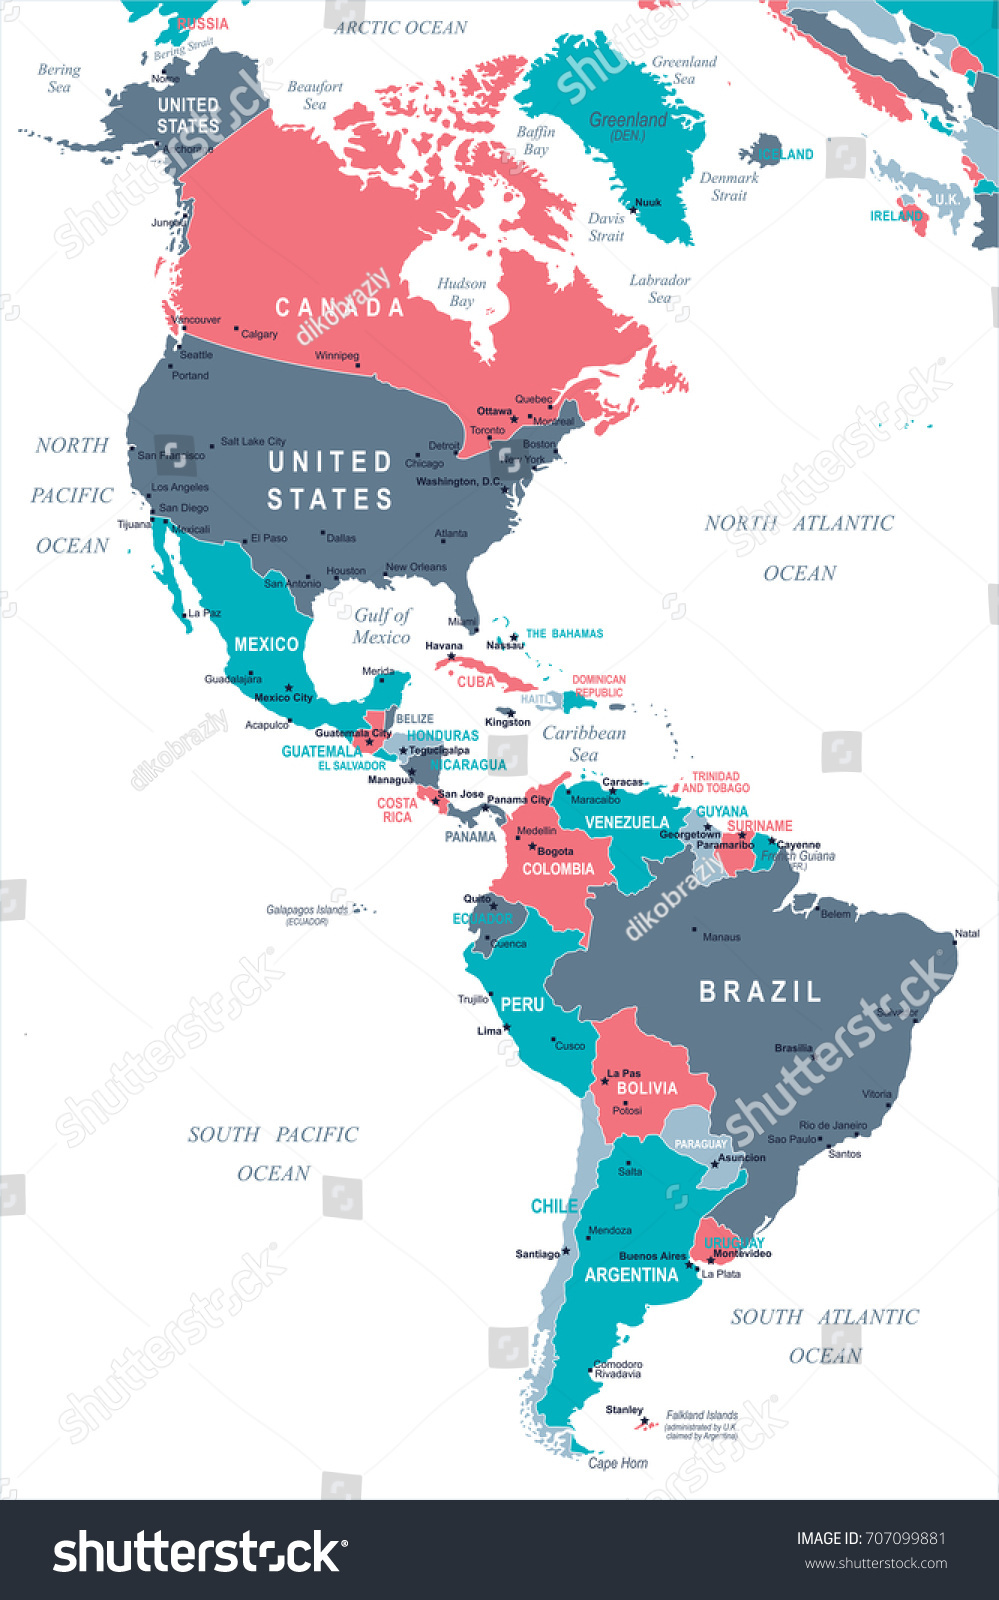 Costa Rica South America Map.South America Map Costa Rica India Physical Map Google Maps Near Me